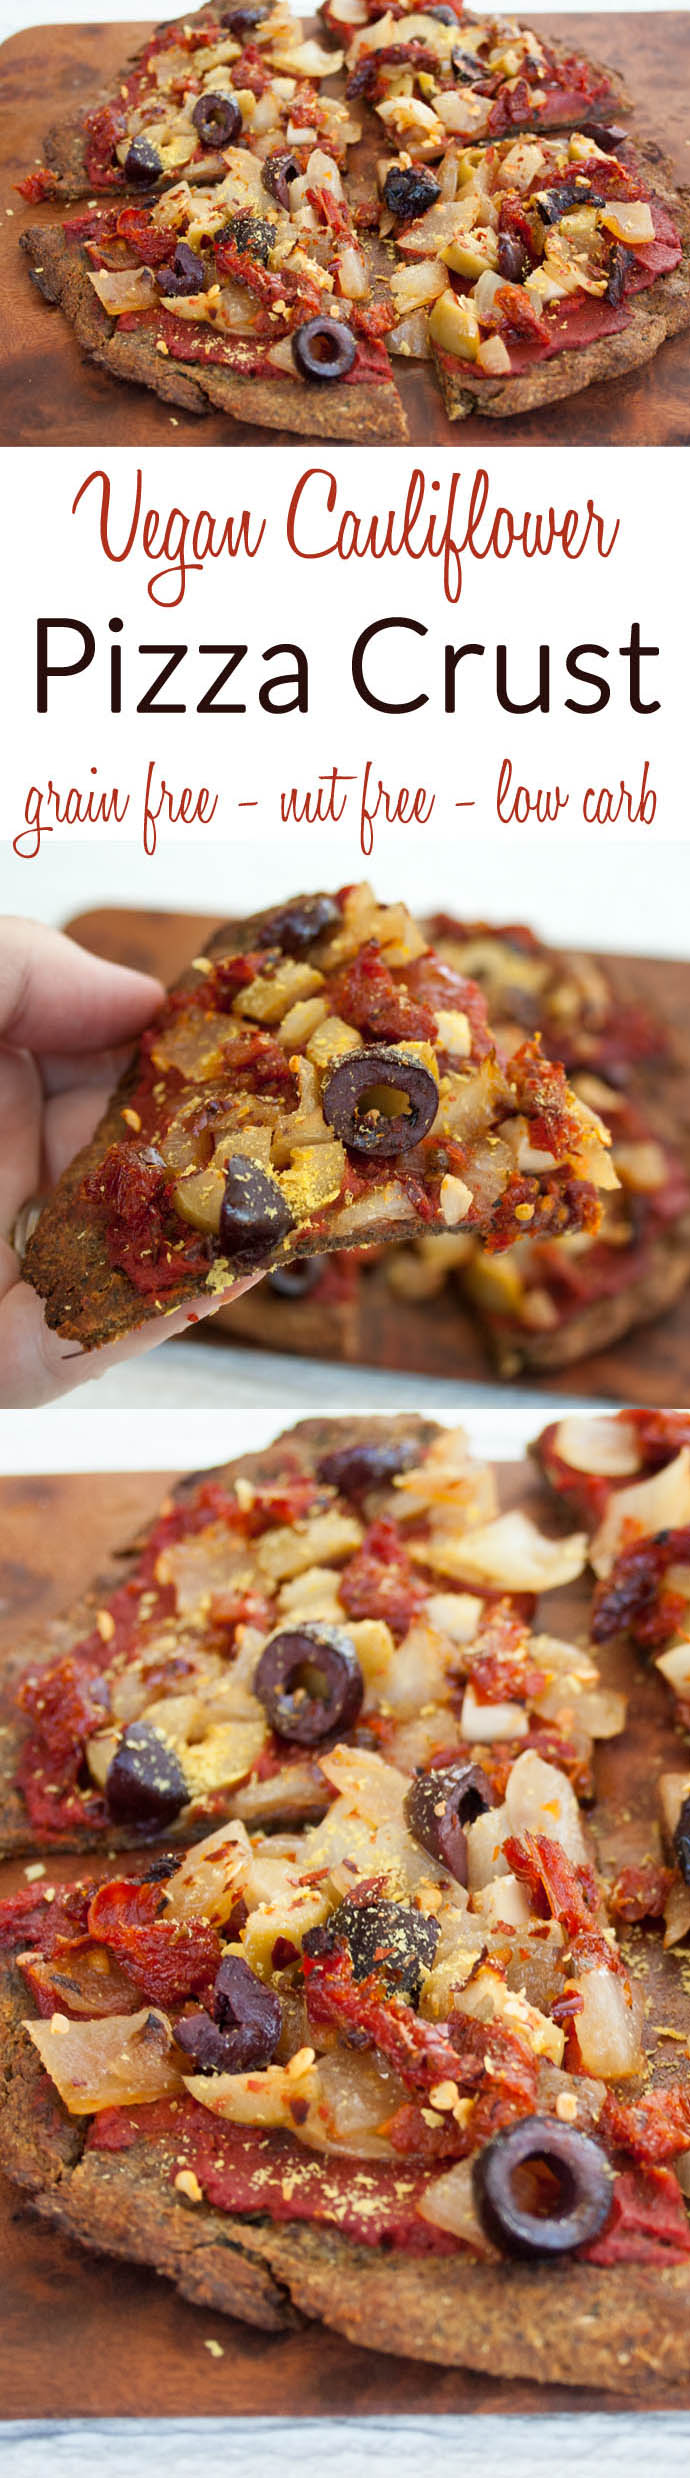 Vegan Cauliflower Pizza Crust Recipe collage photo with two photos and text in between.